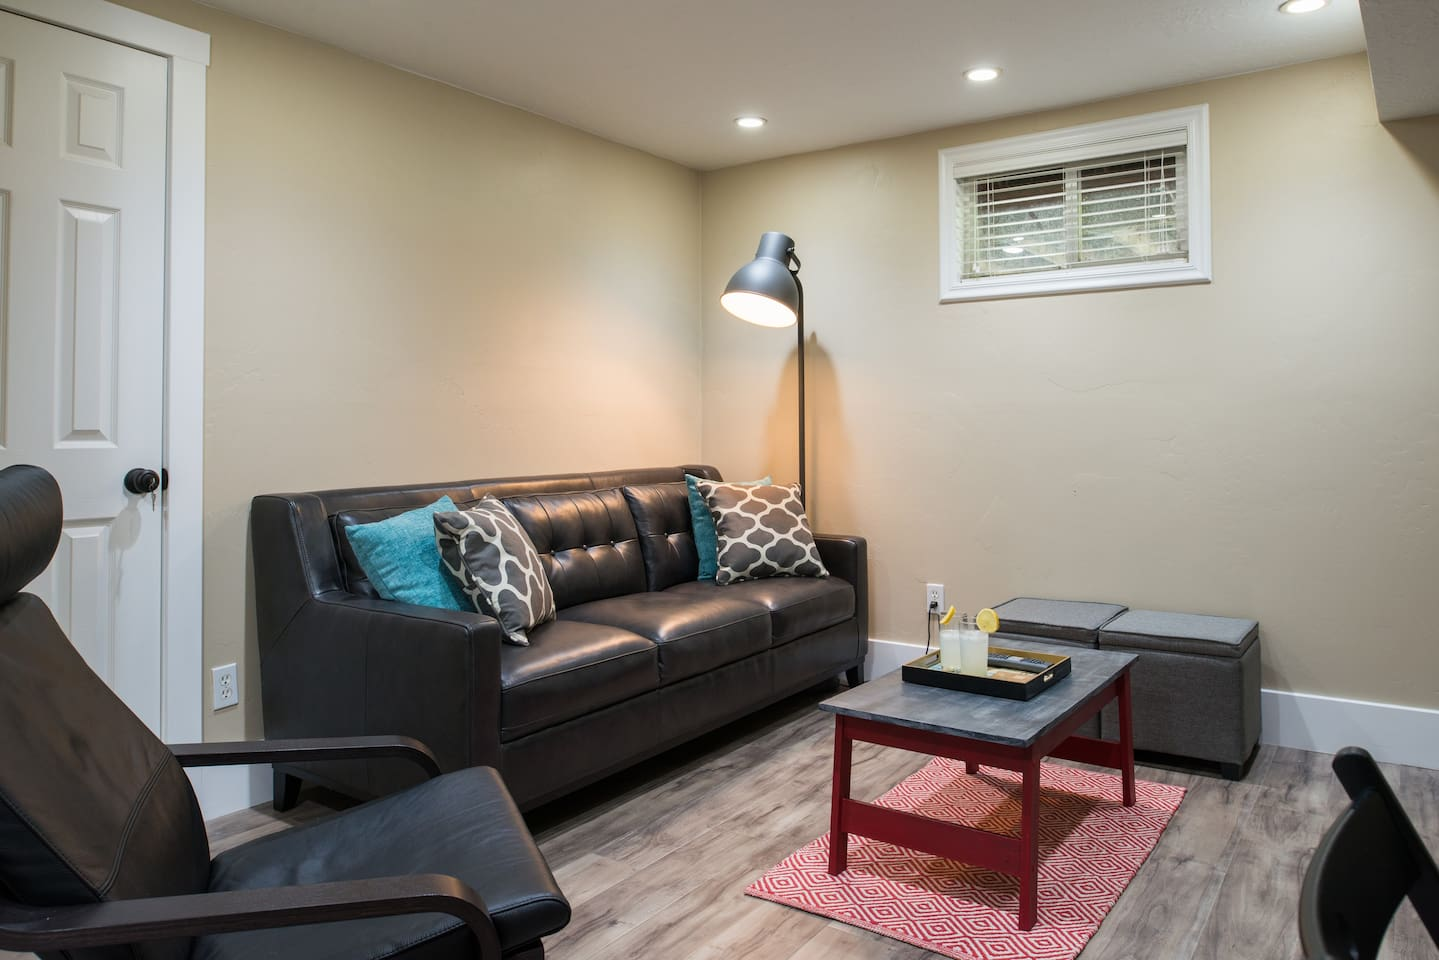 Living room with real leather couch and very comfy real leather chair.